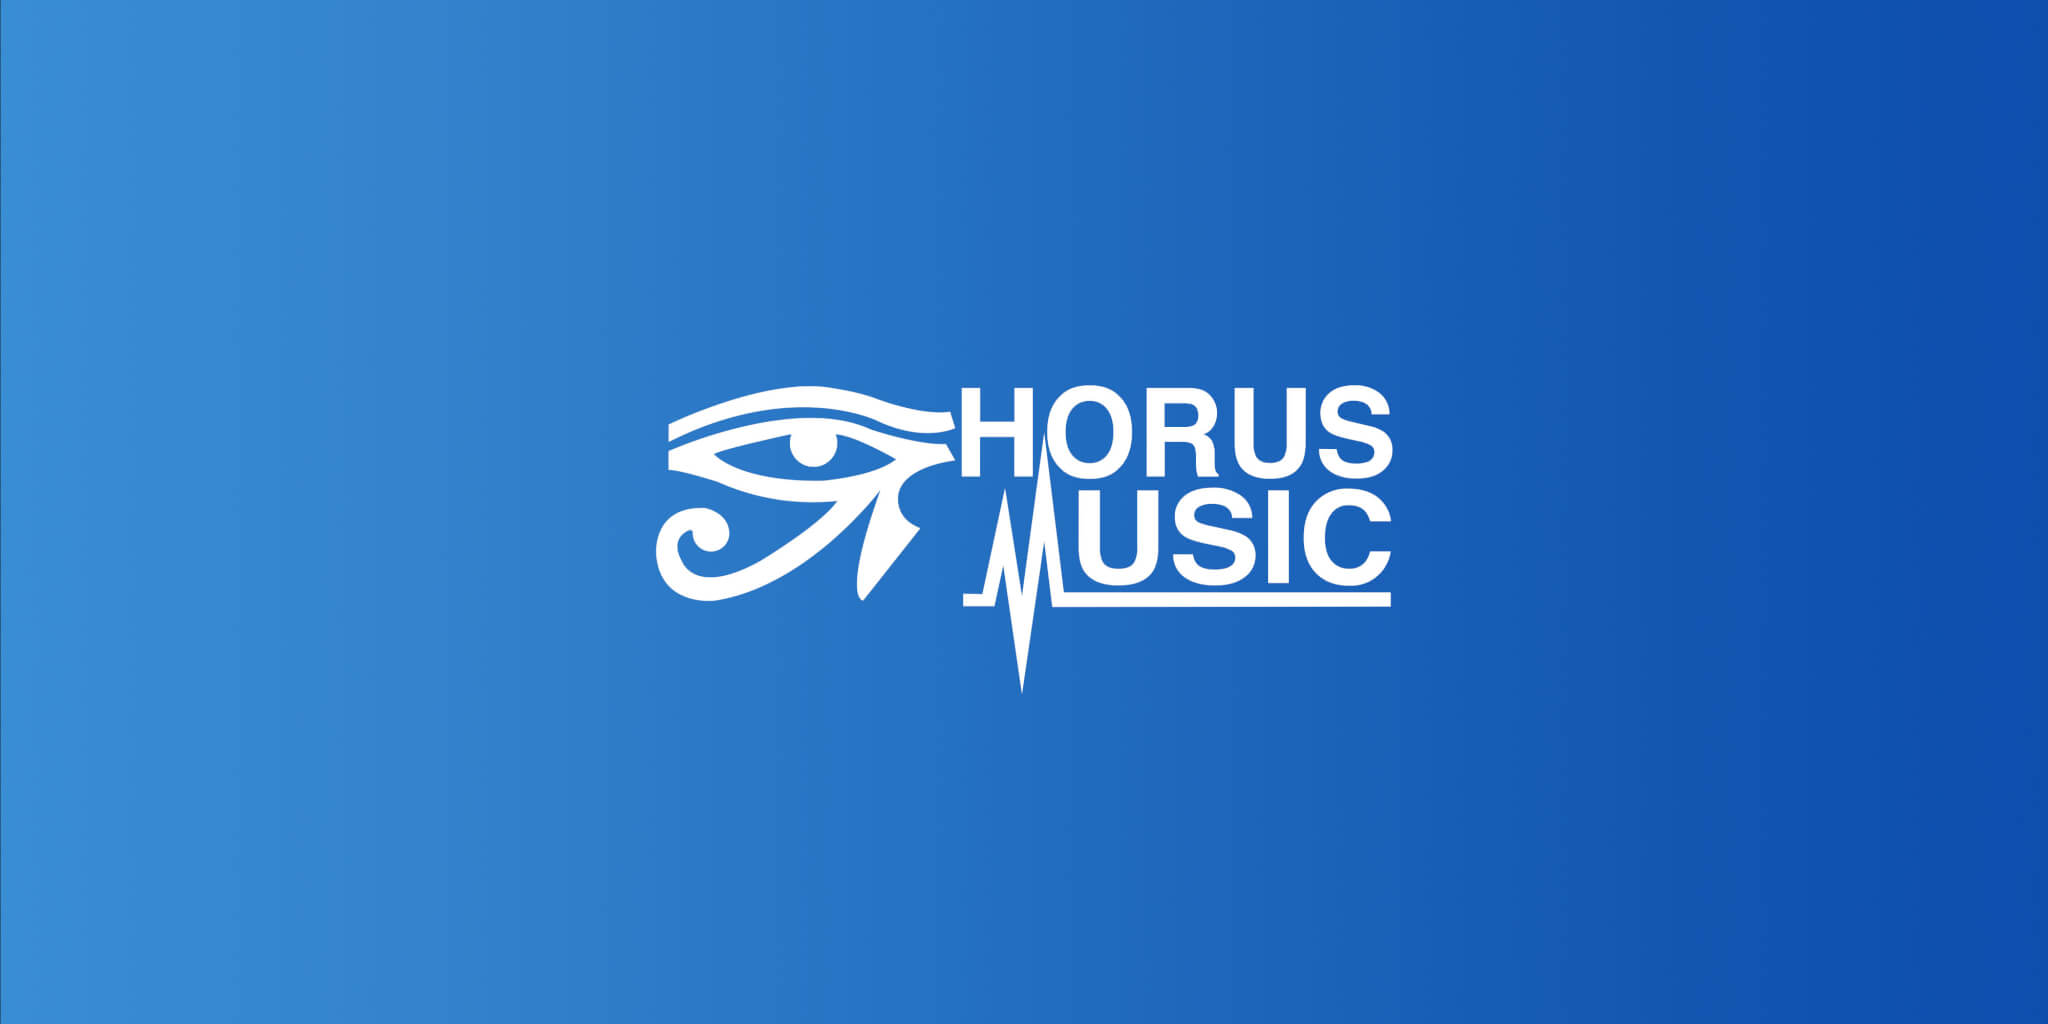 Horus Music | Distribute and promote your music worldwide